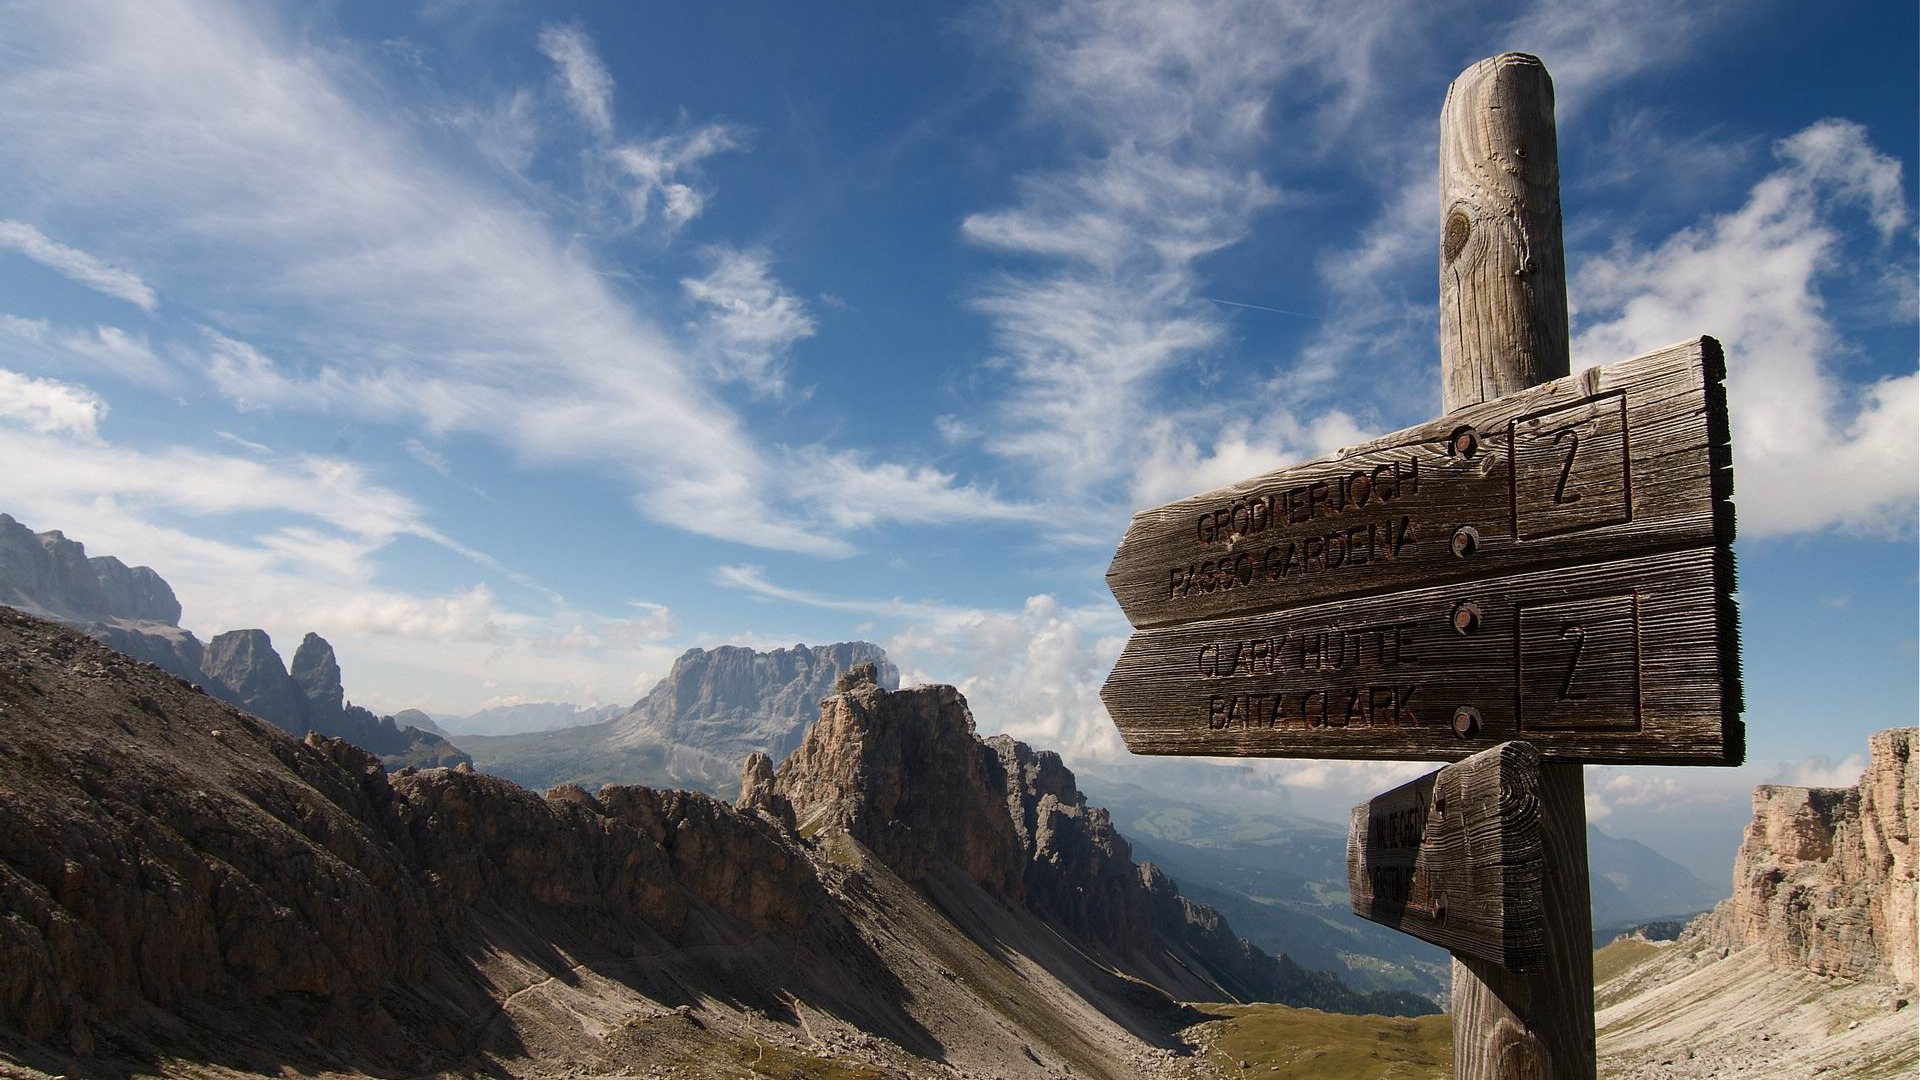 The_signpost_After_the_scenery-2012_landscape_Featured_Wallpaper_1920x1080.jpg